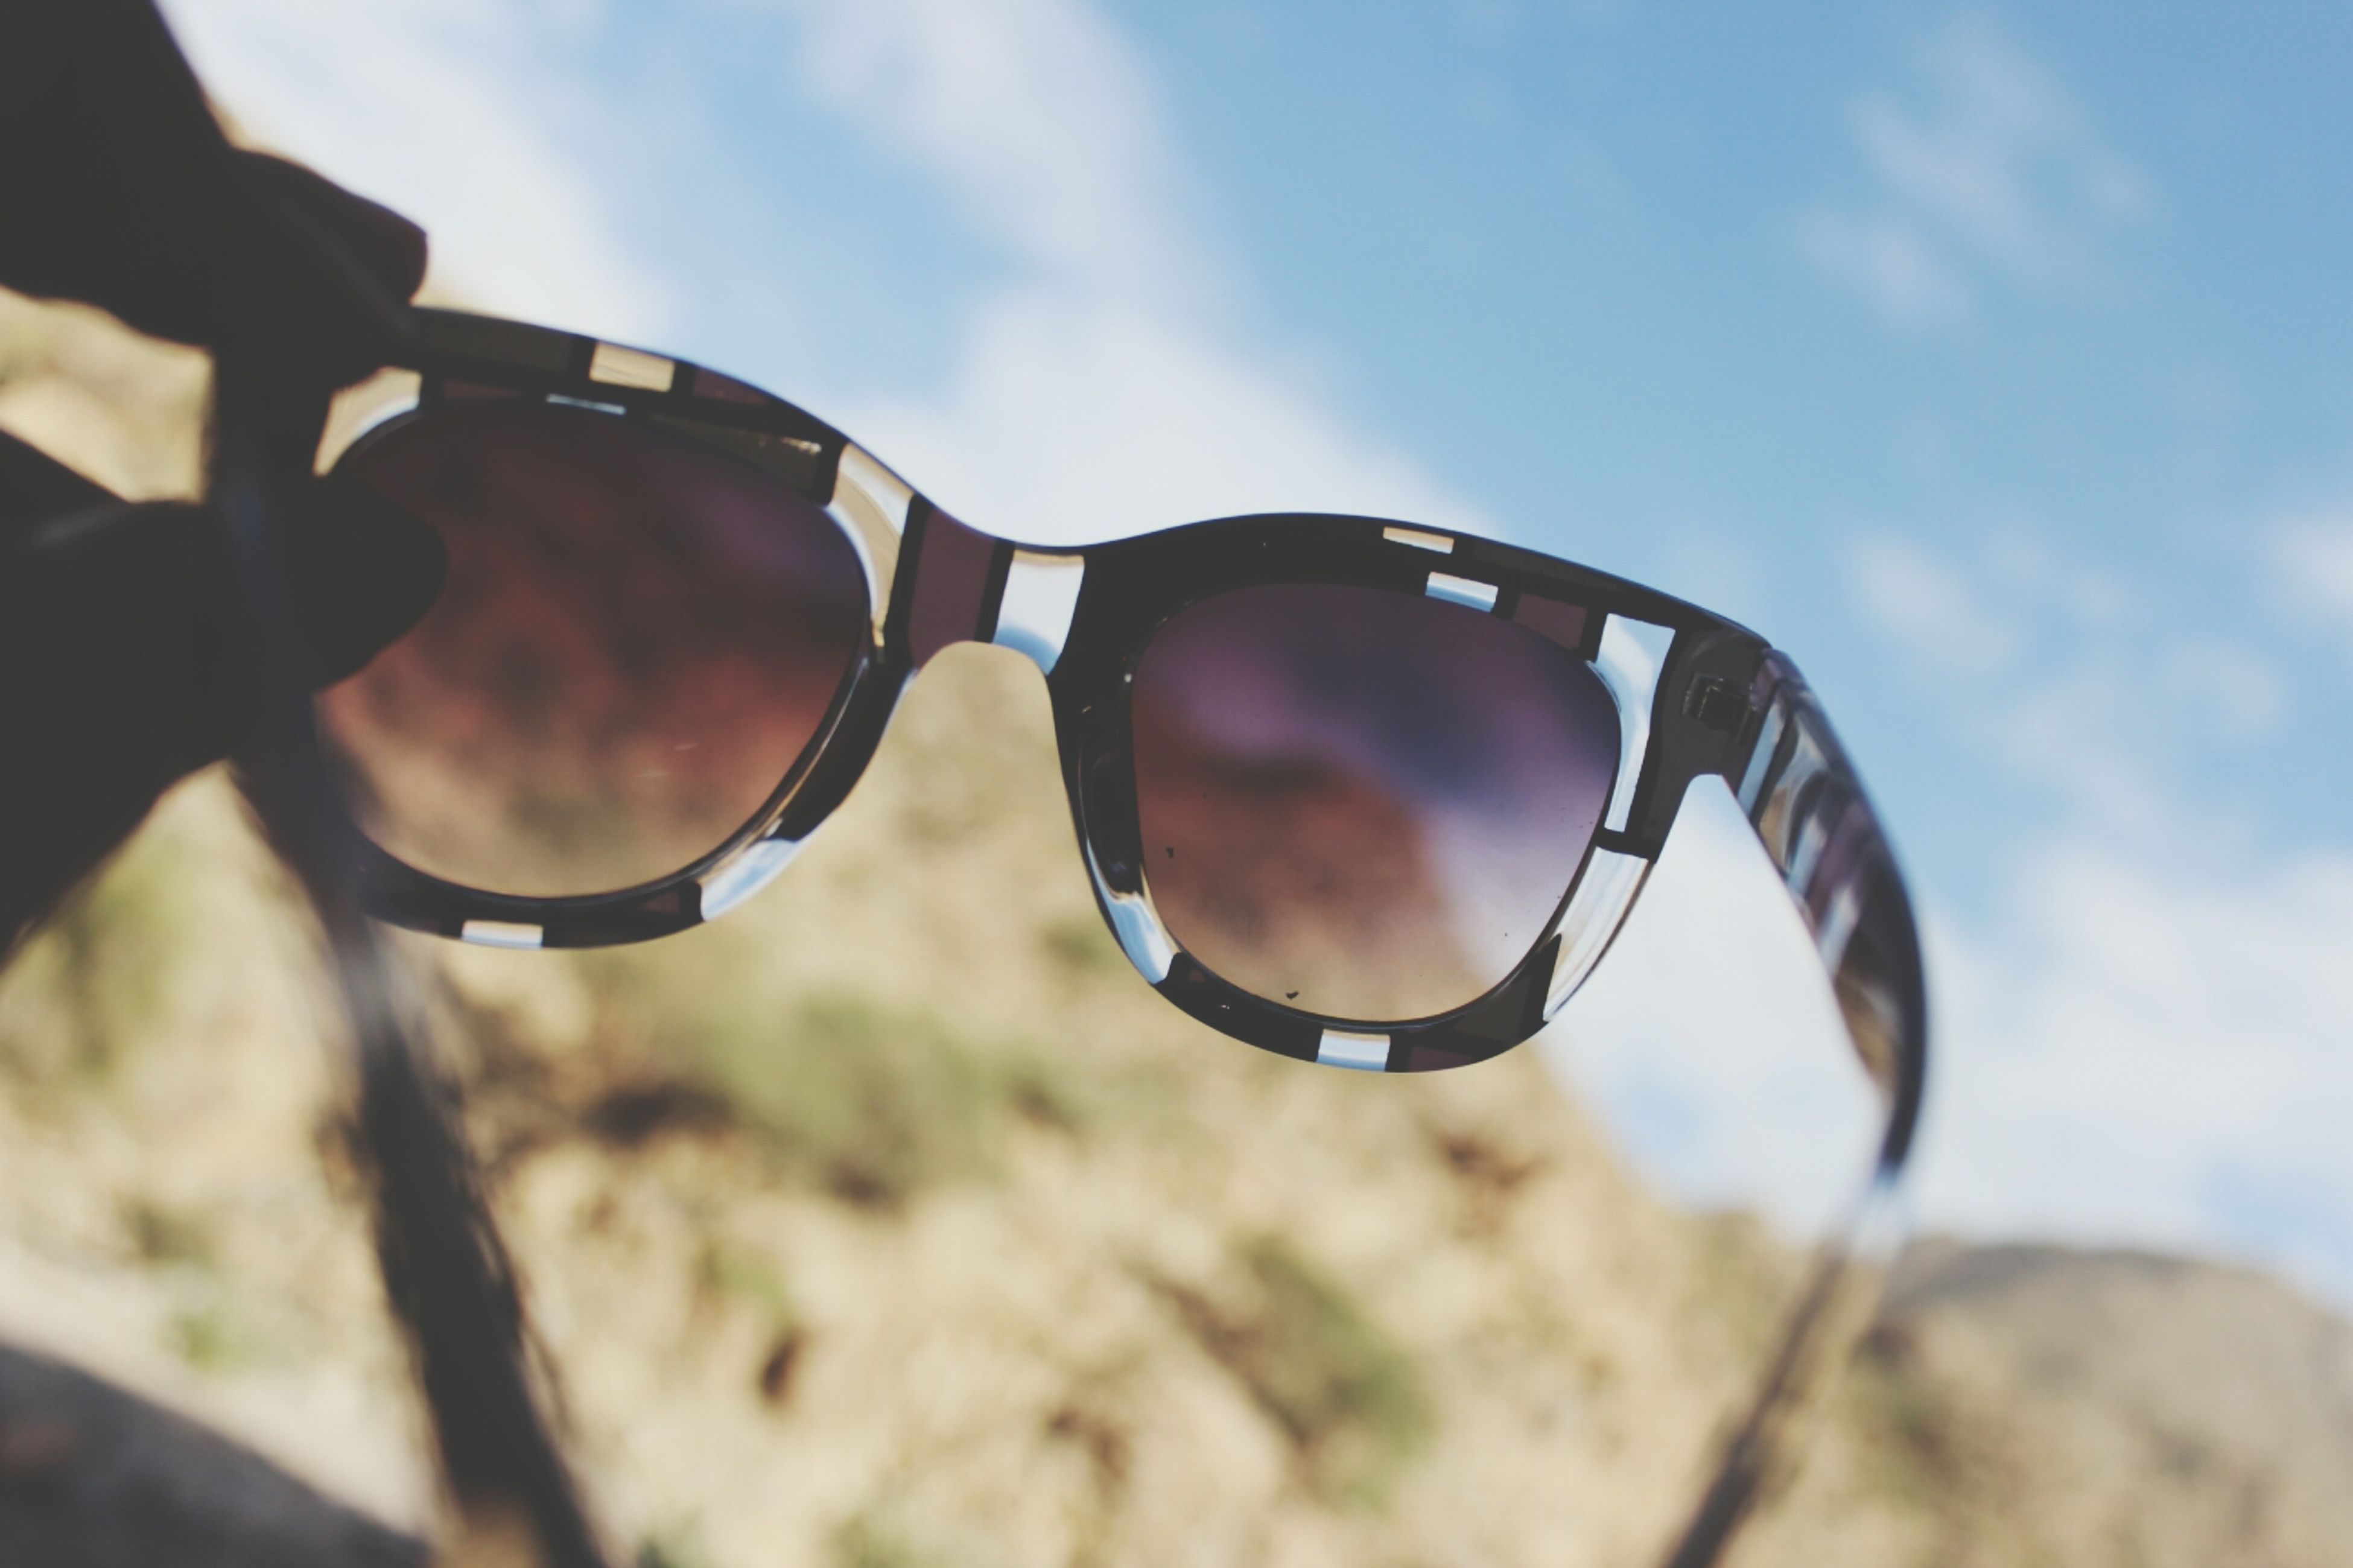 sky, focus on foreground, close-up, cloud - sky, cloud, day, sunglasses, part of, outdoors, leisure activity, reflection, low angle view, selective focus, sunlight, cropped, nature, circle, person